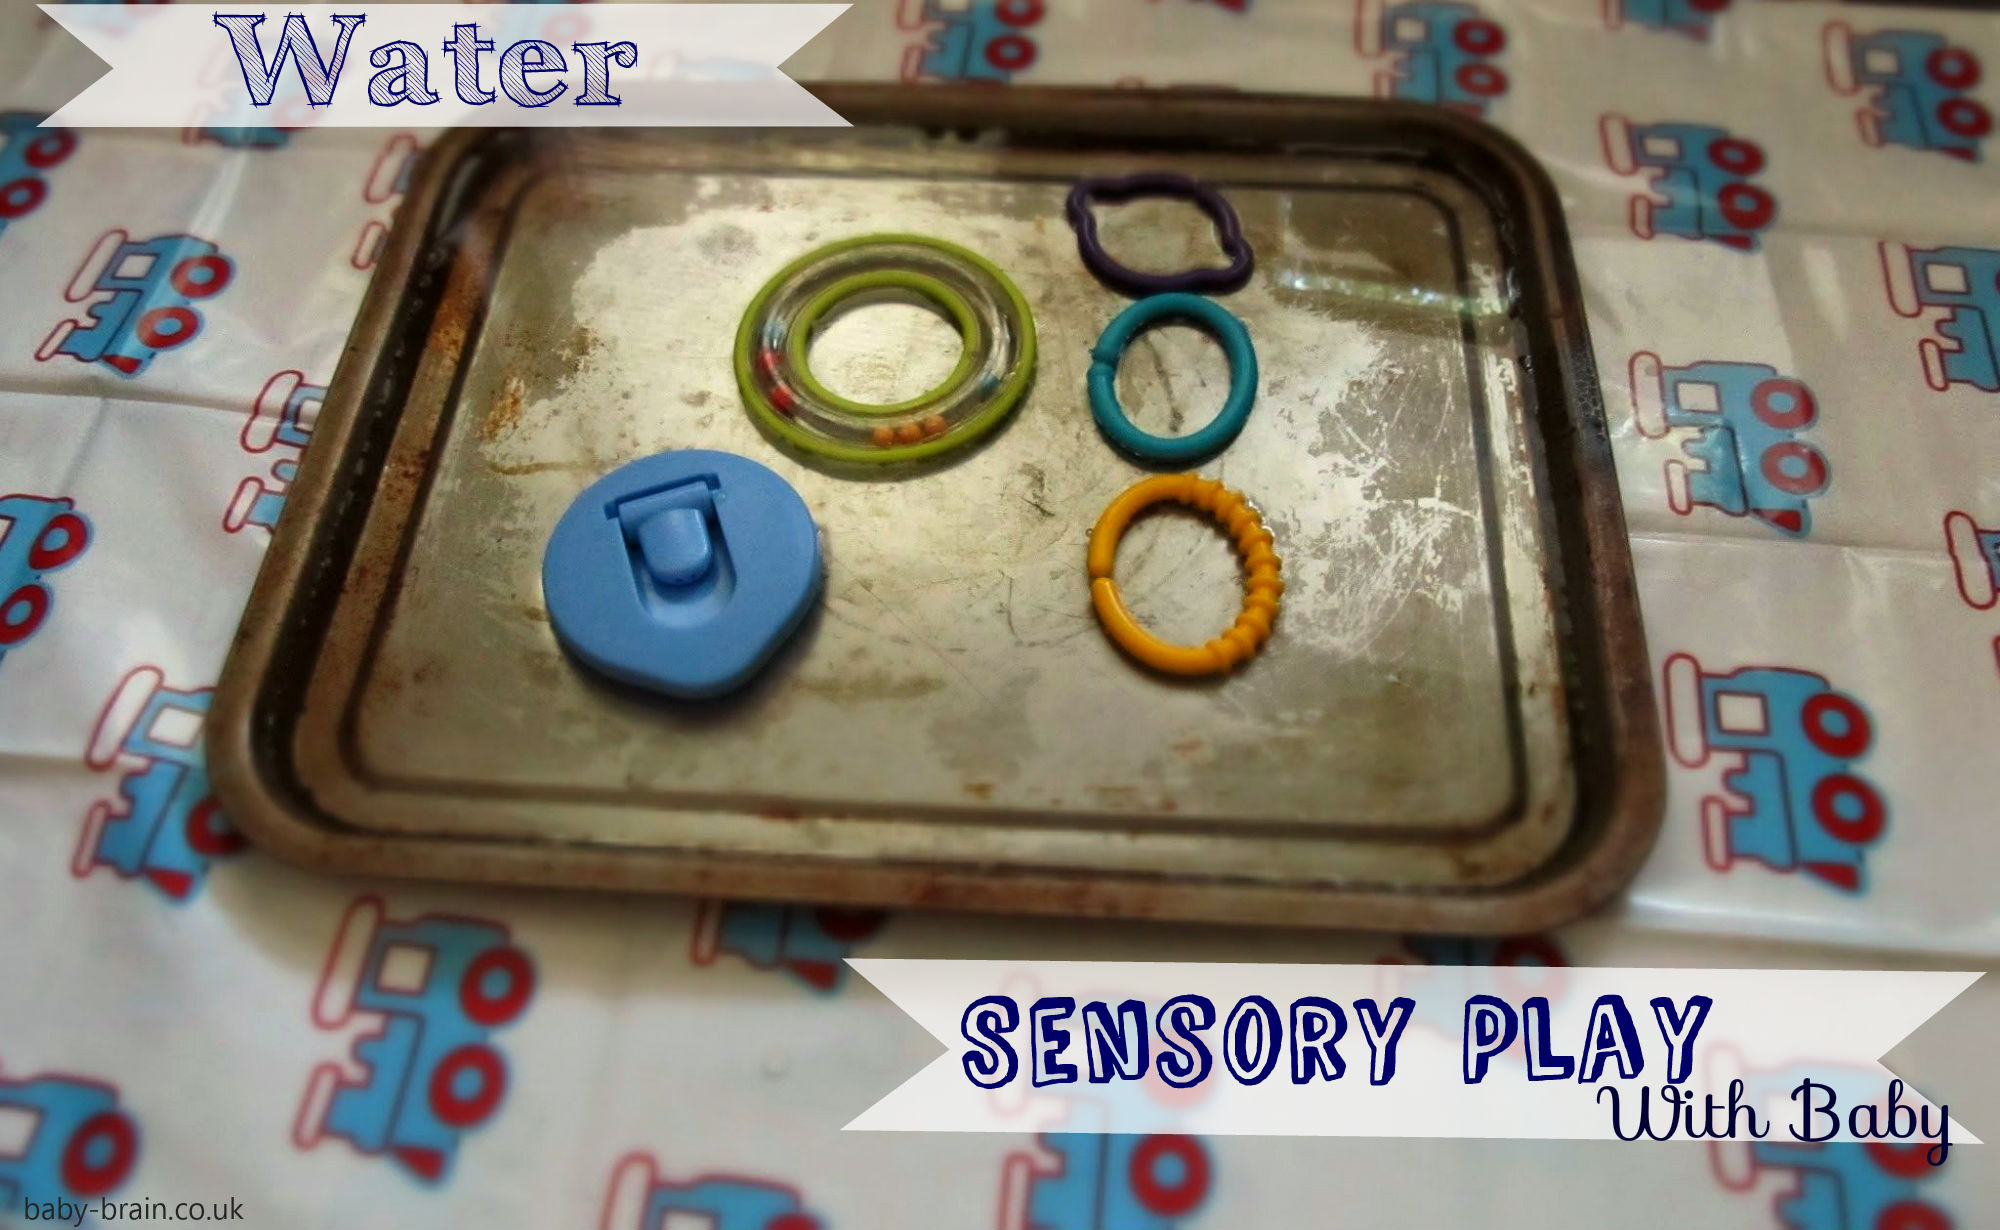 baby water sensory play. baby-brain.co.uk, psychology resource, perspective and blog on motherhood and babies